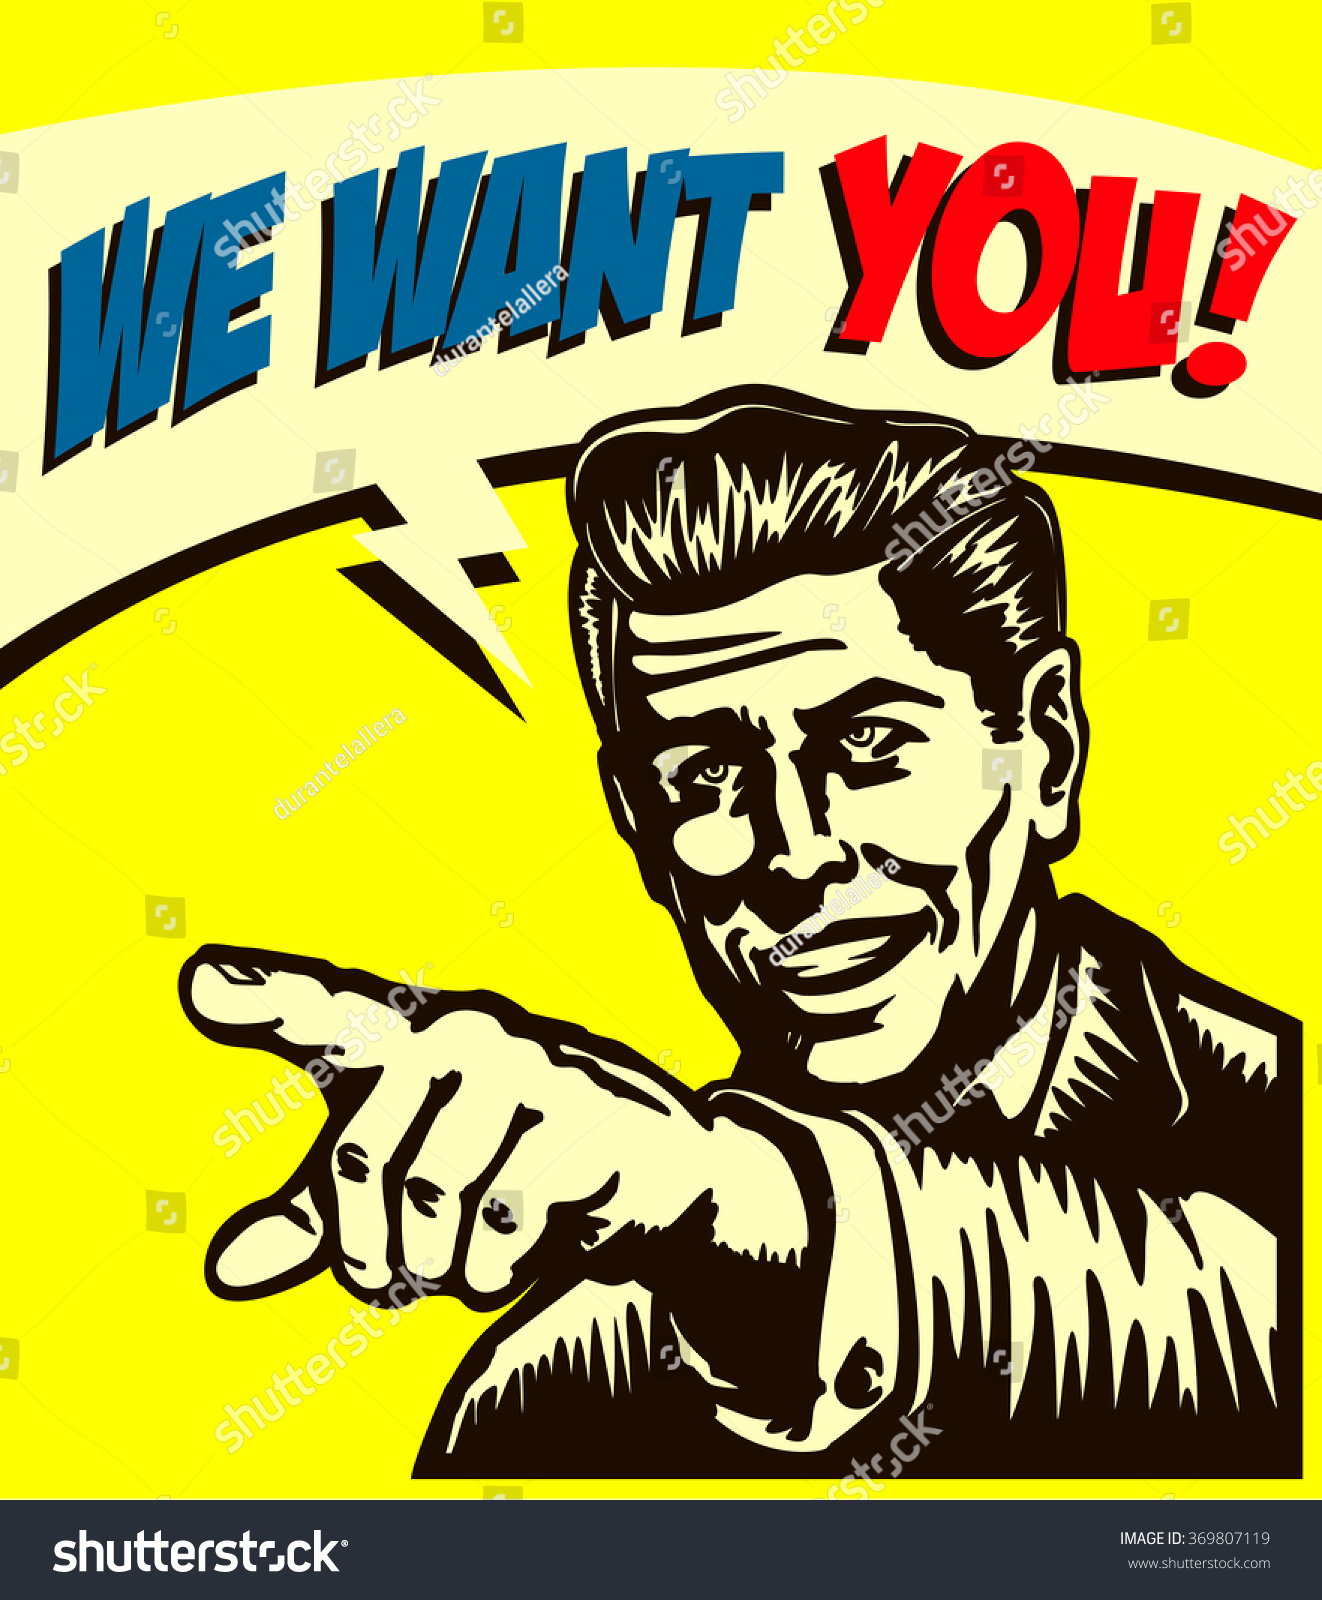 want you vintage businessman pointing finger stock vector i want you vintage businessman pointing finger picking candidate for job vacancy we